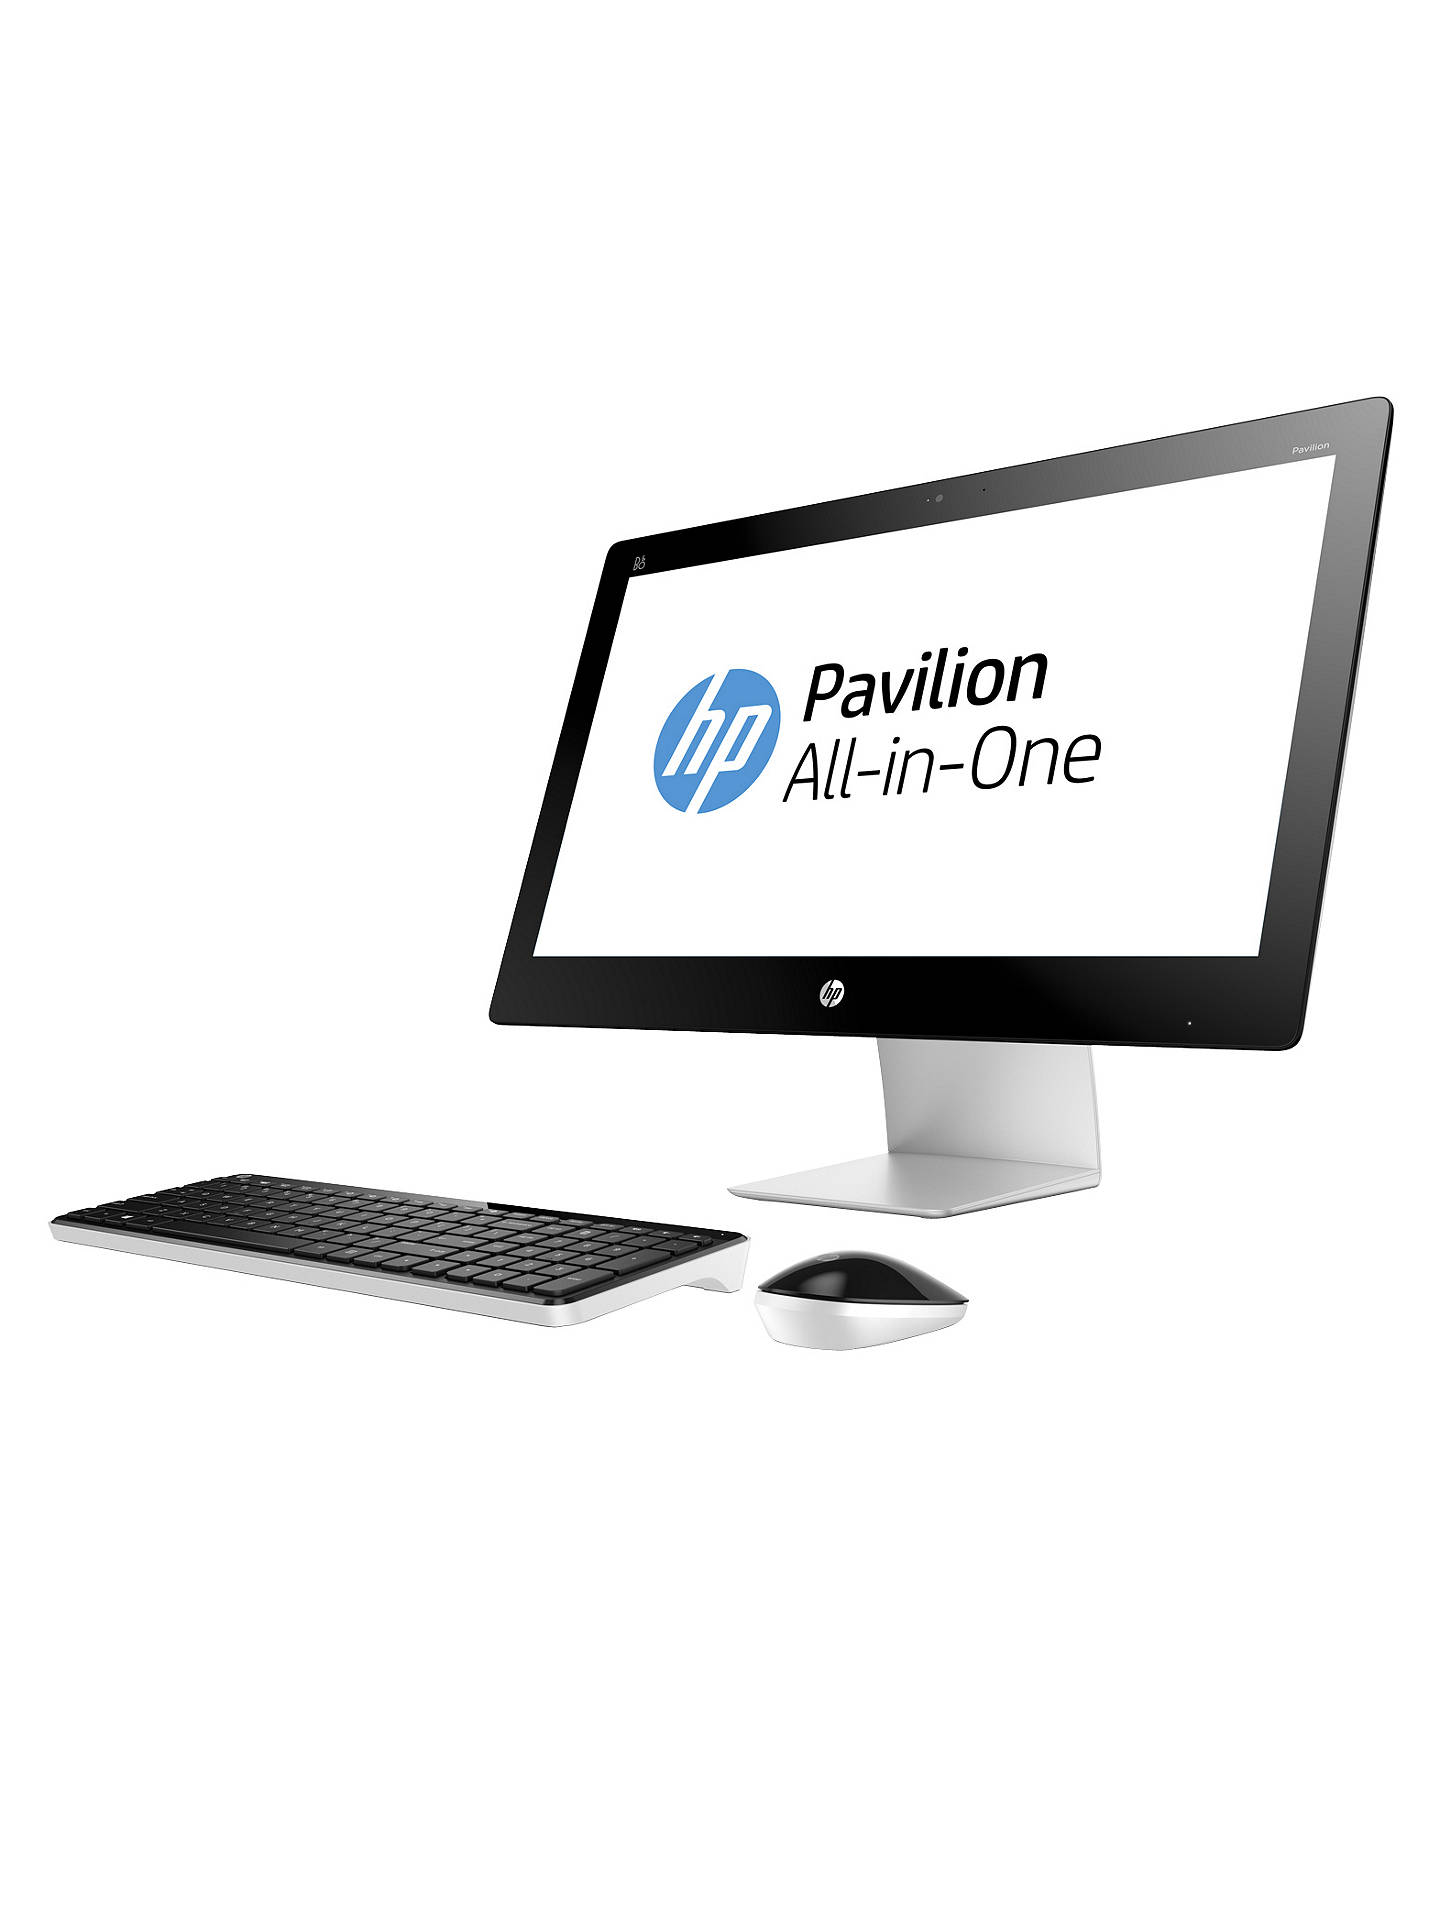 HP Pavilion 23-q170na All-in-One Desktop PC, Intel Core i7, 8GB RAM